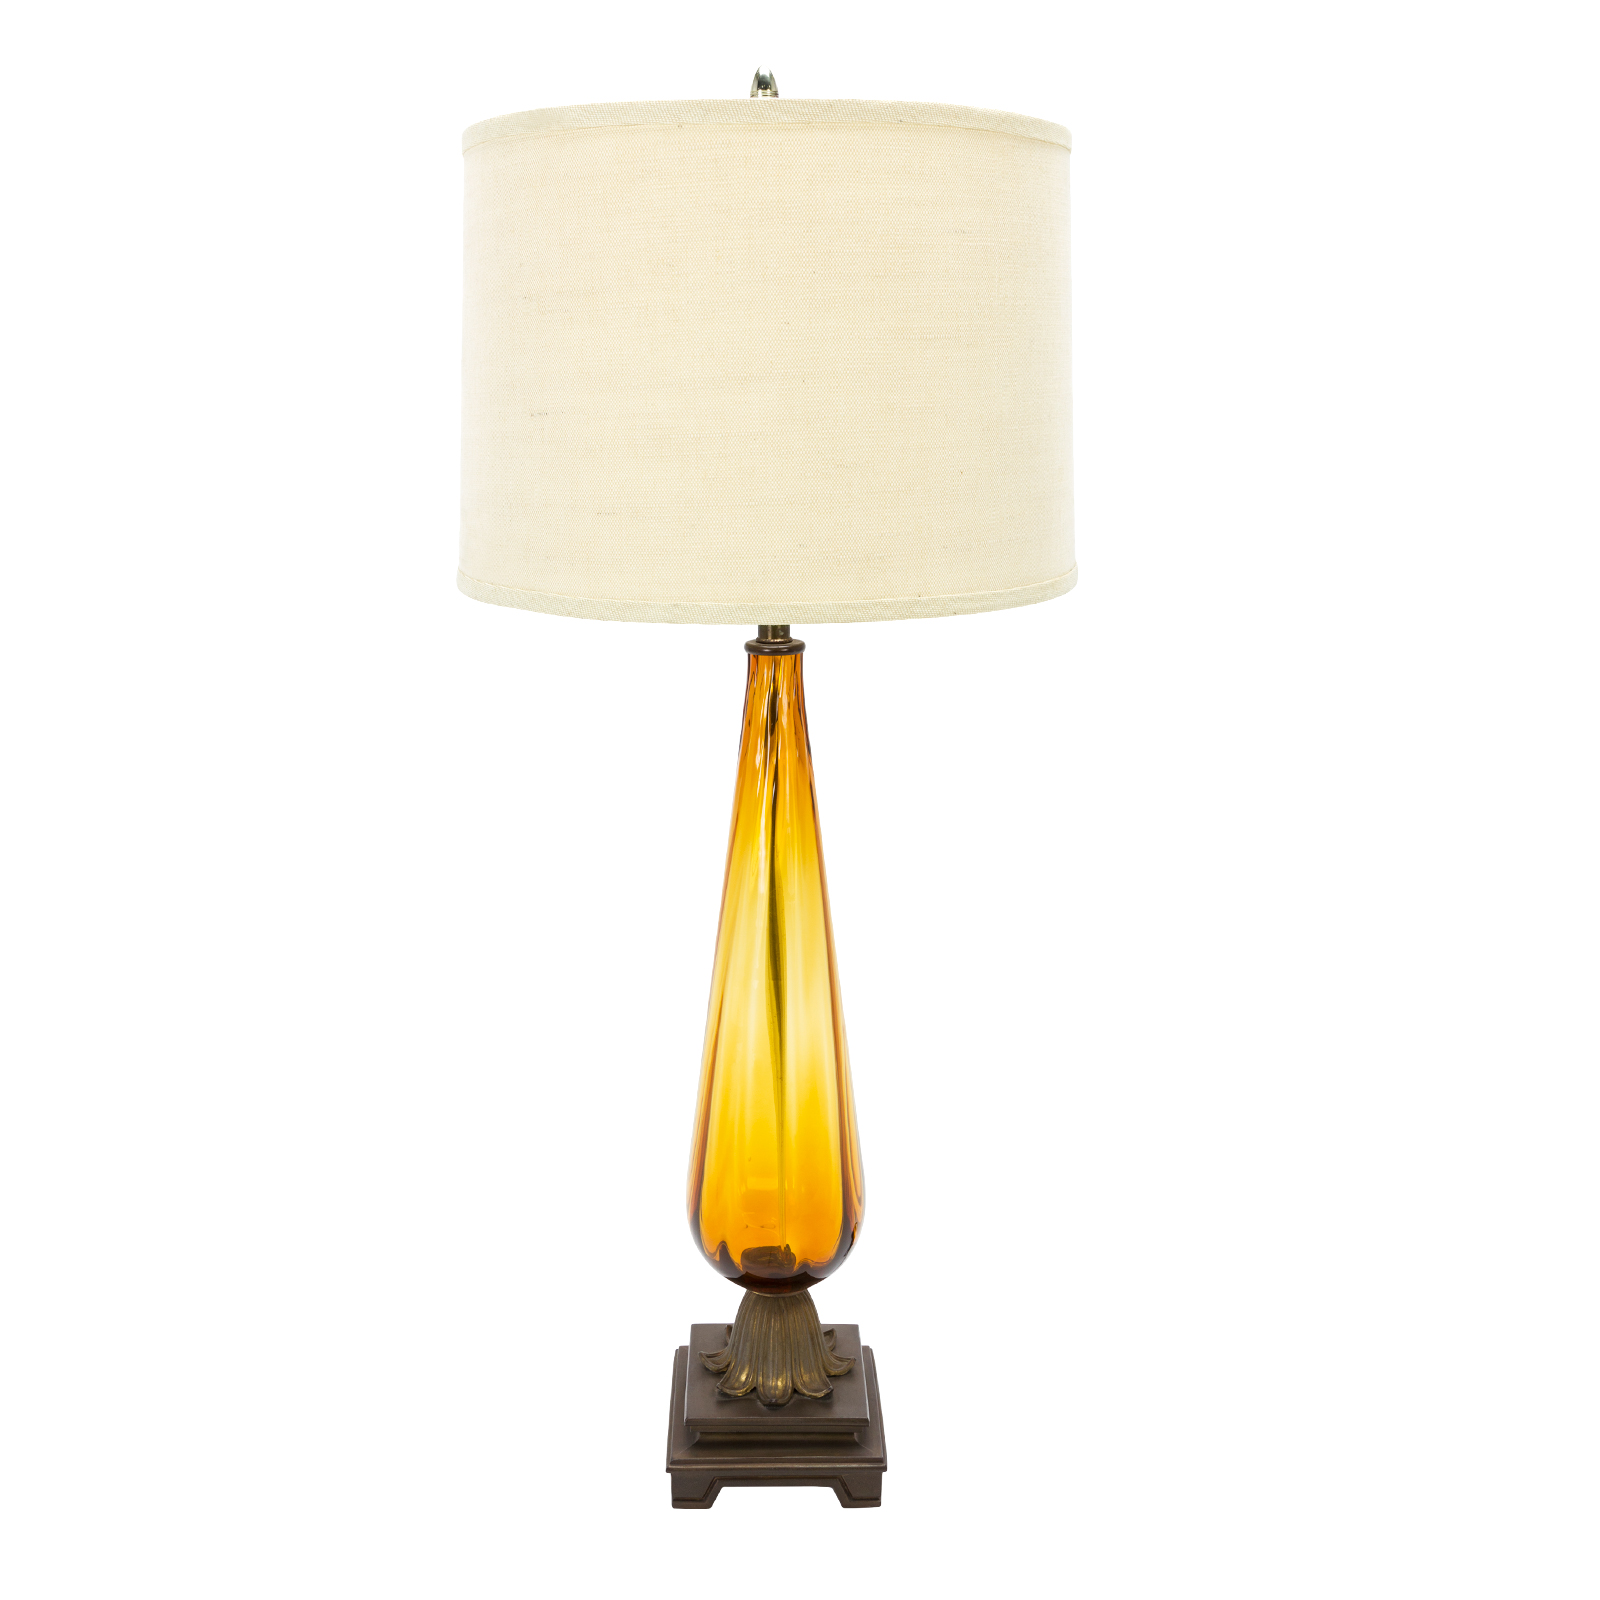 Amber table lamp formdecor amber table lamp aloadofball Image collections